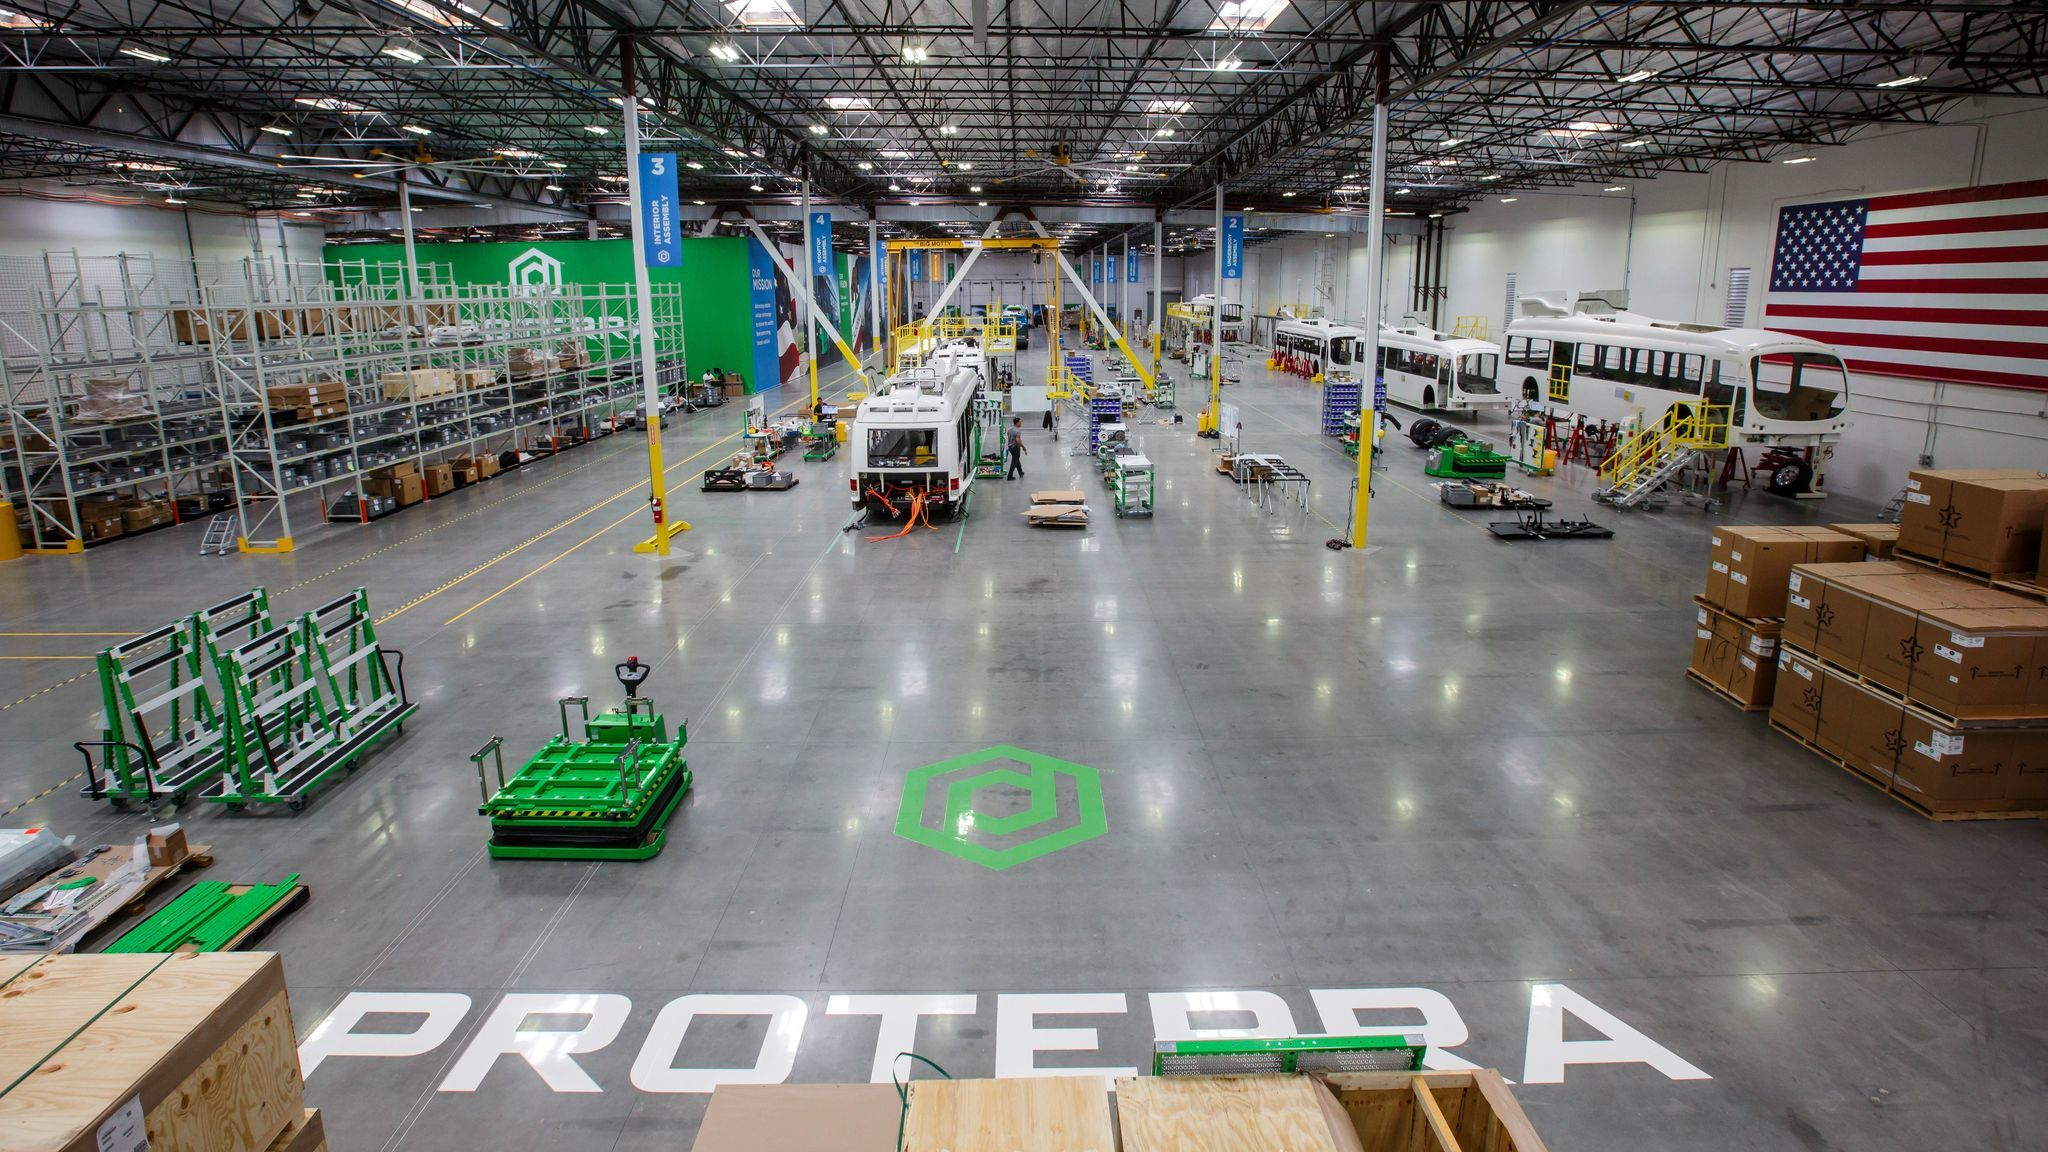 Before Proterra starting building buses here, Amazon used the space as a temporary holiday distribution center.